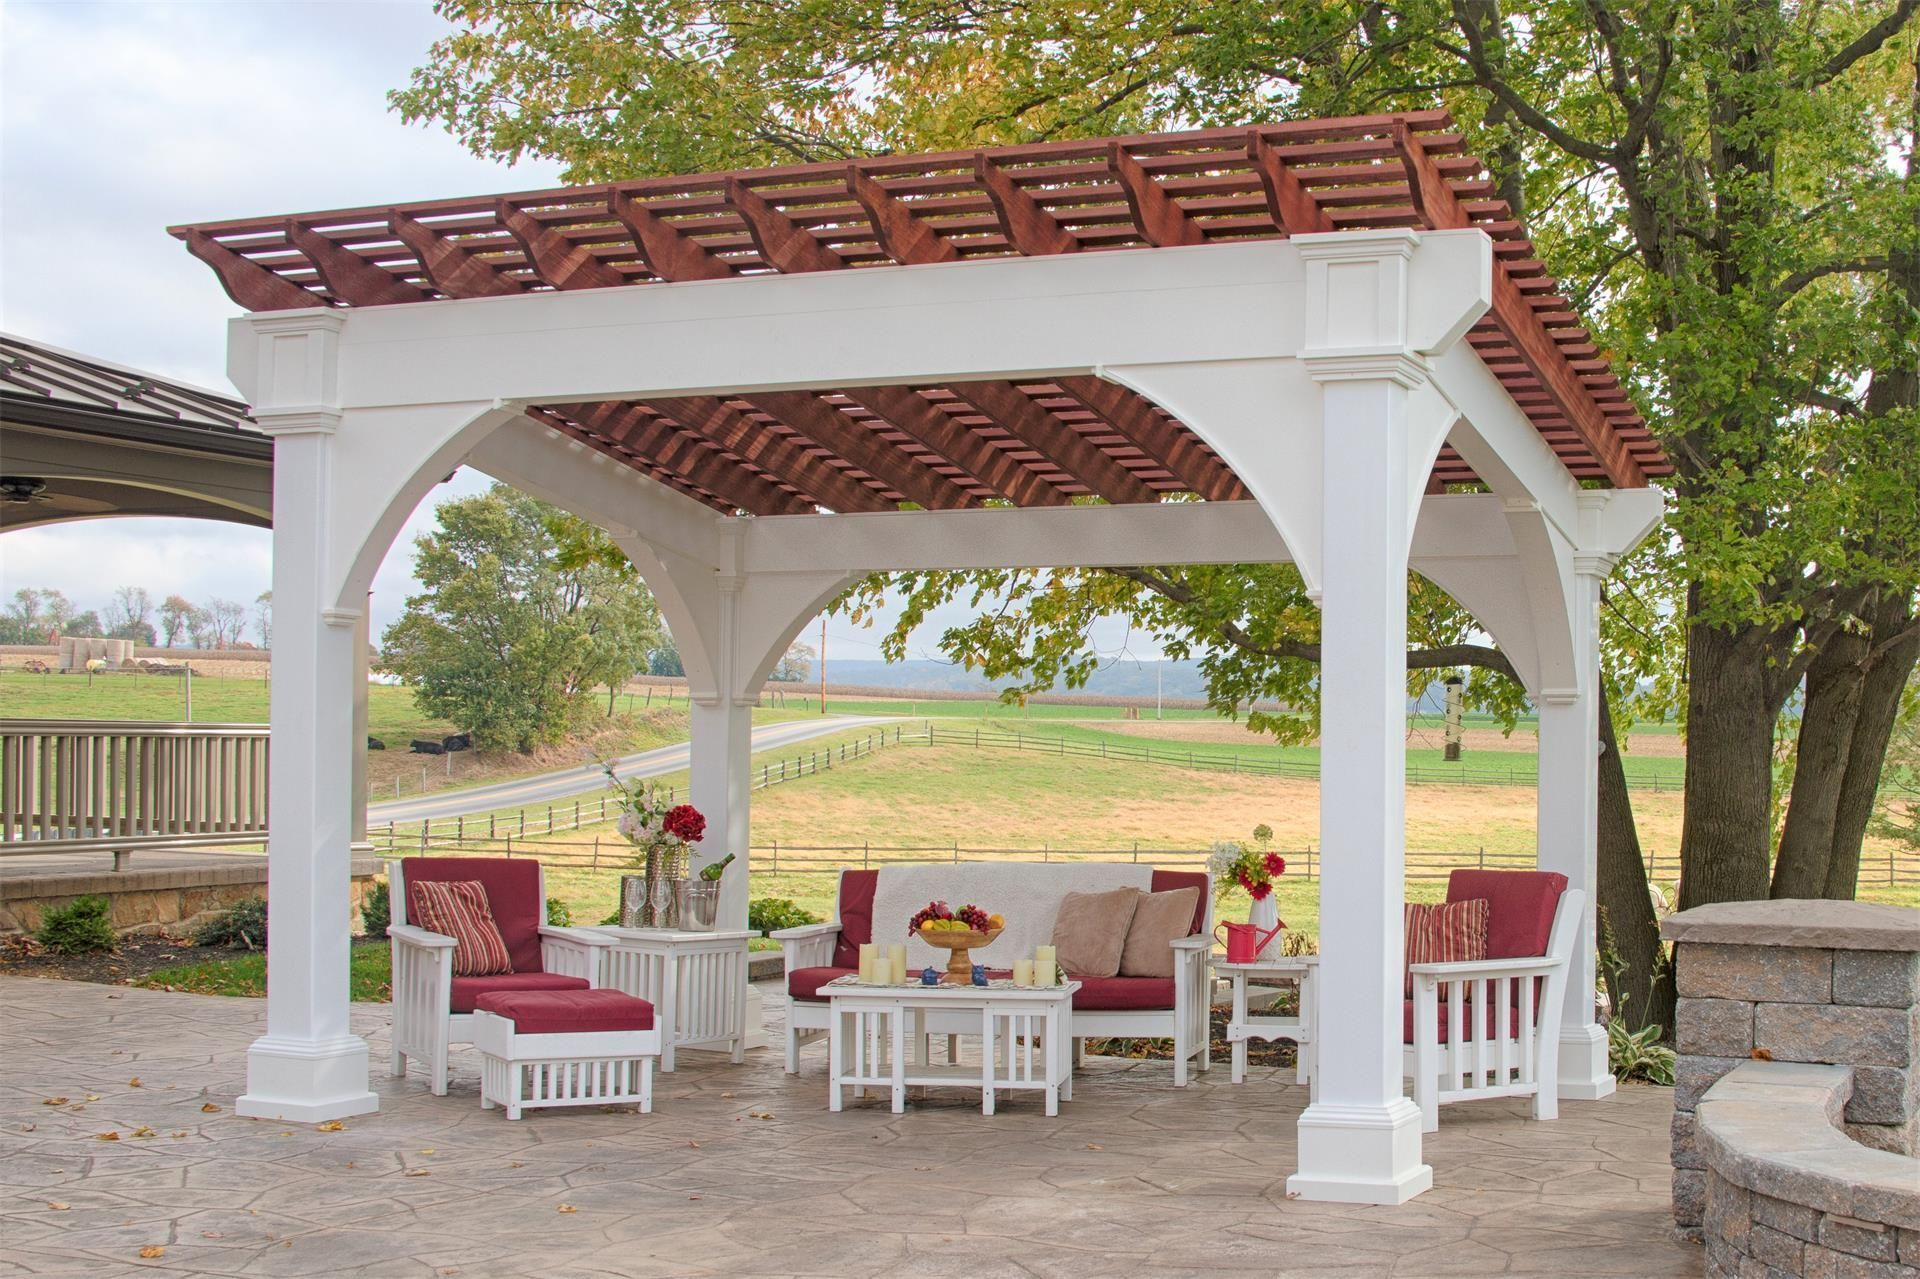 Amish Santa Fe Vinyl Pergola Kit The Amish Santa Fe Vinyl Pergola Kit Is Ready To Host Your Outdoor Activities This Cust Outdoor Pergola Pergola Plans Pergola